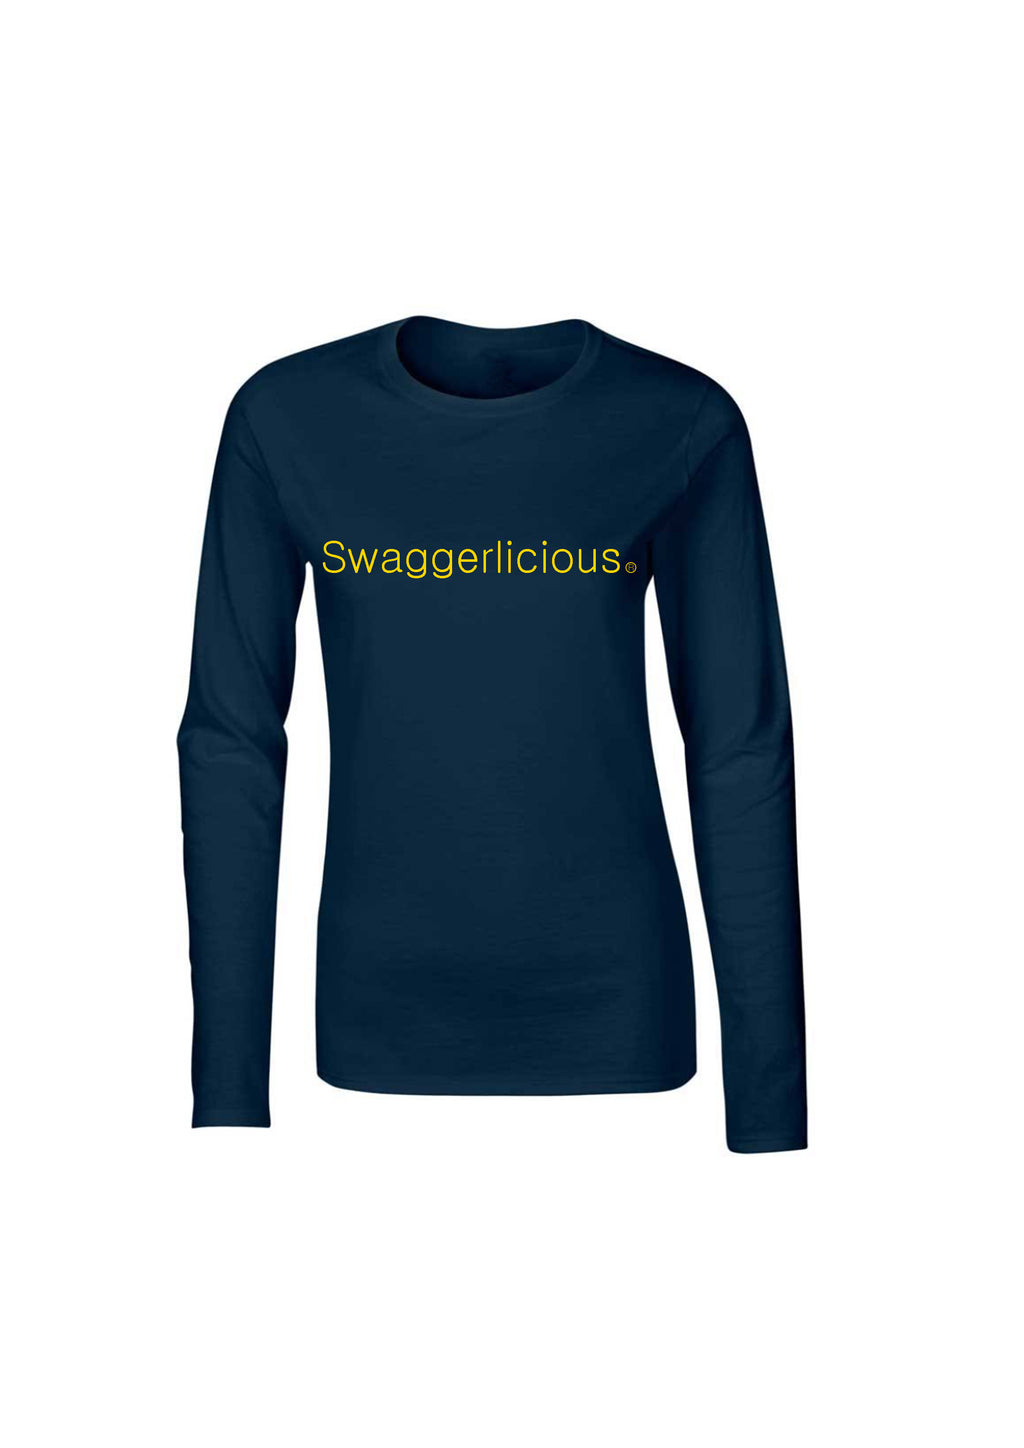 NAVY BLUE SWAGGERLICIOUS LADIES LONG SLEEVE TOP - swaggerlicious-clothing.com